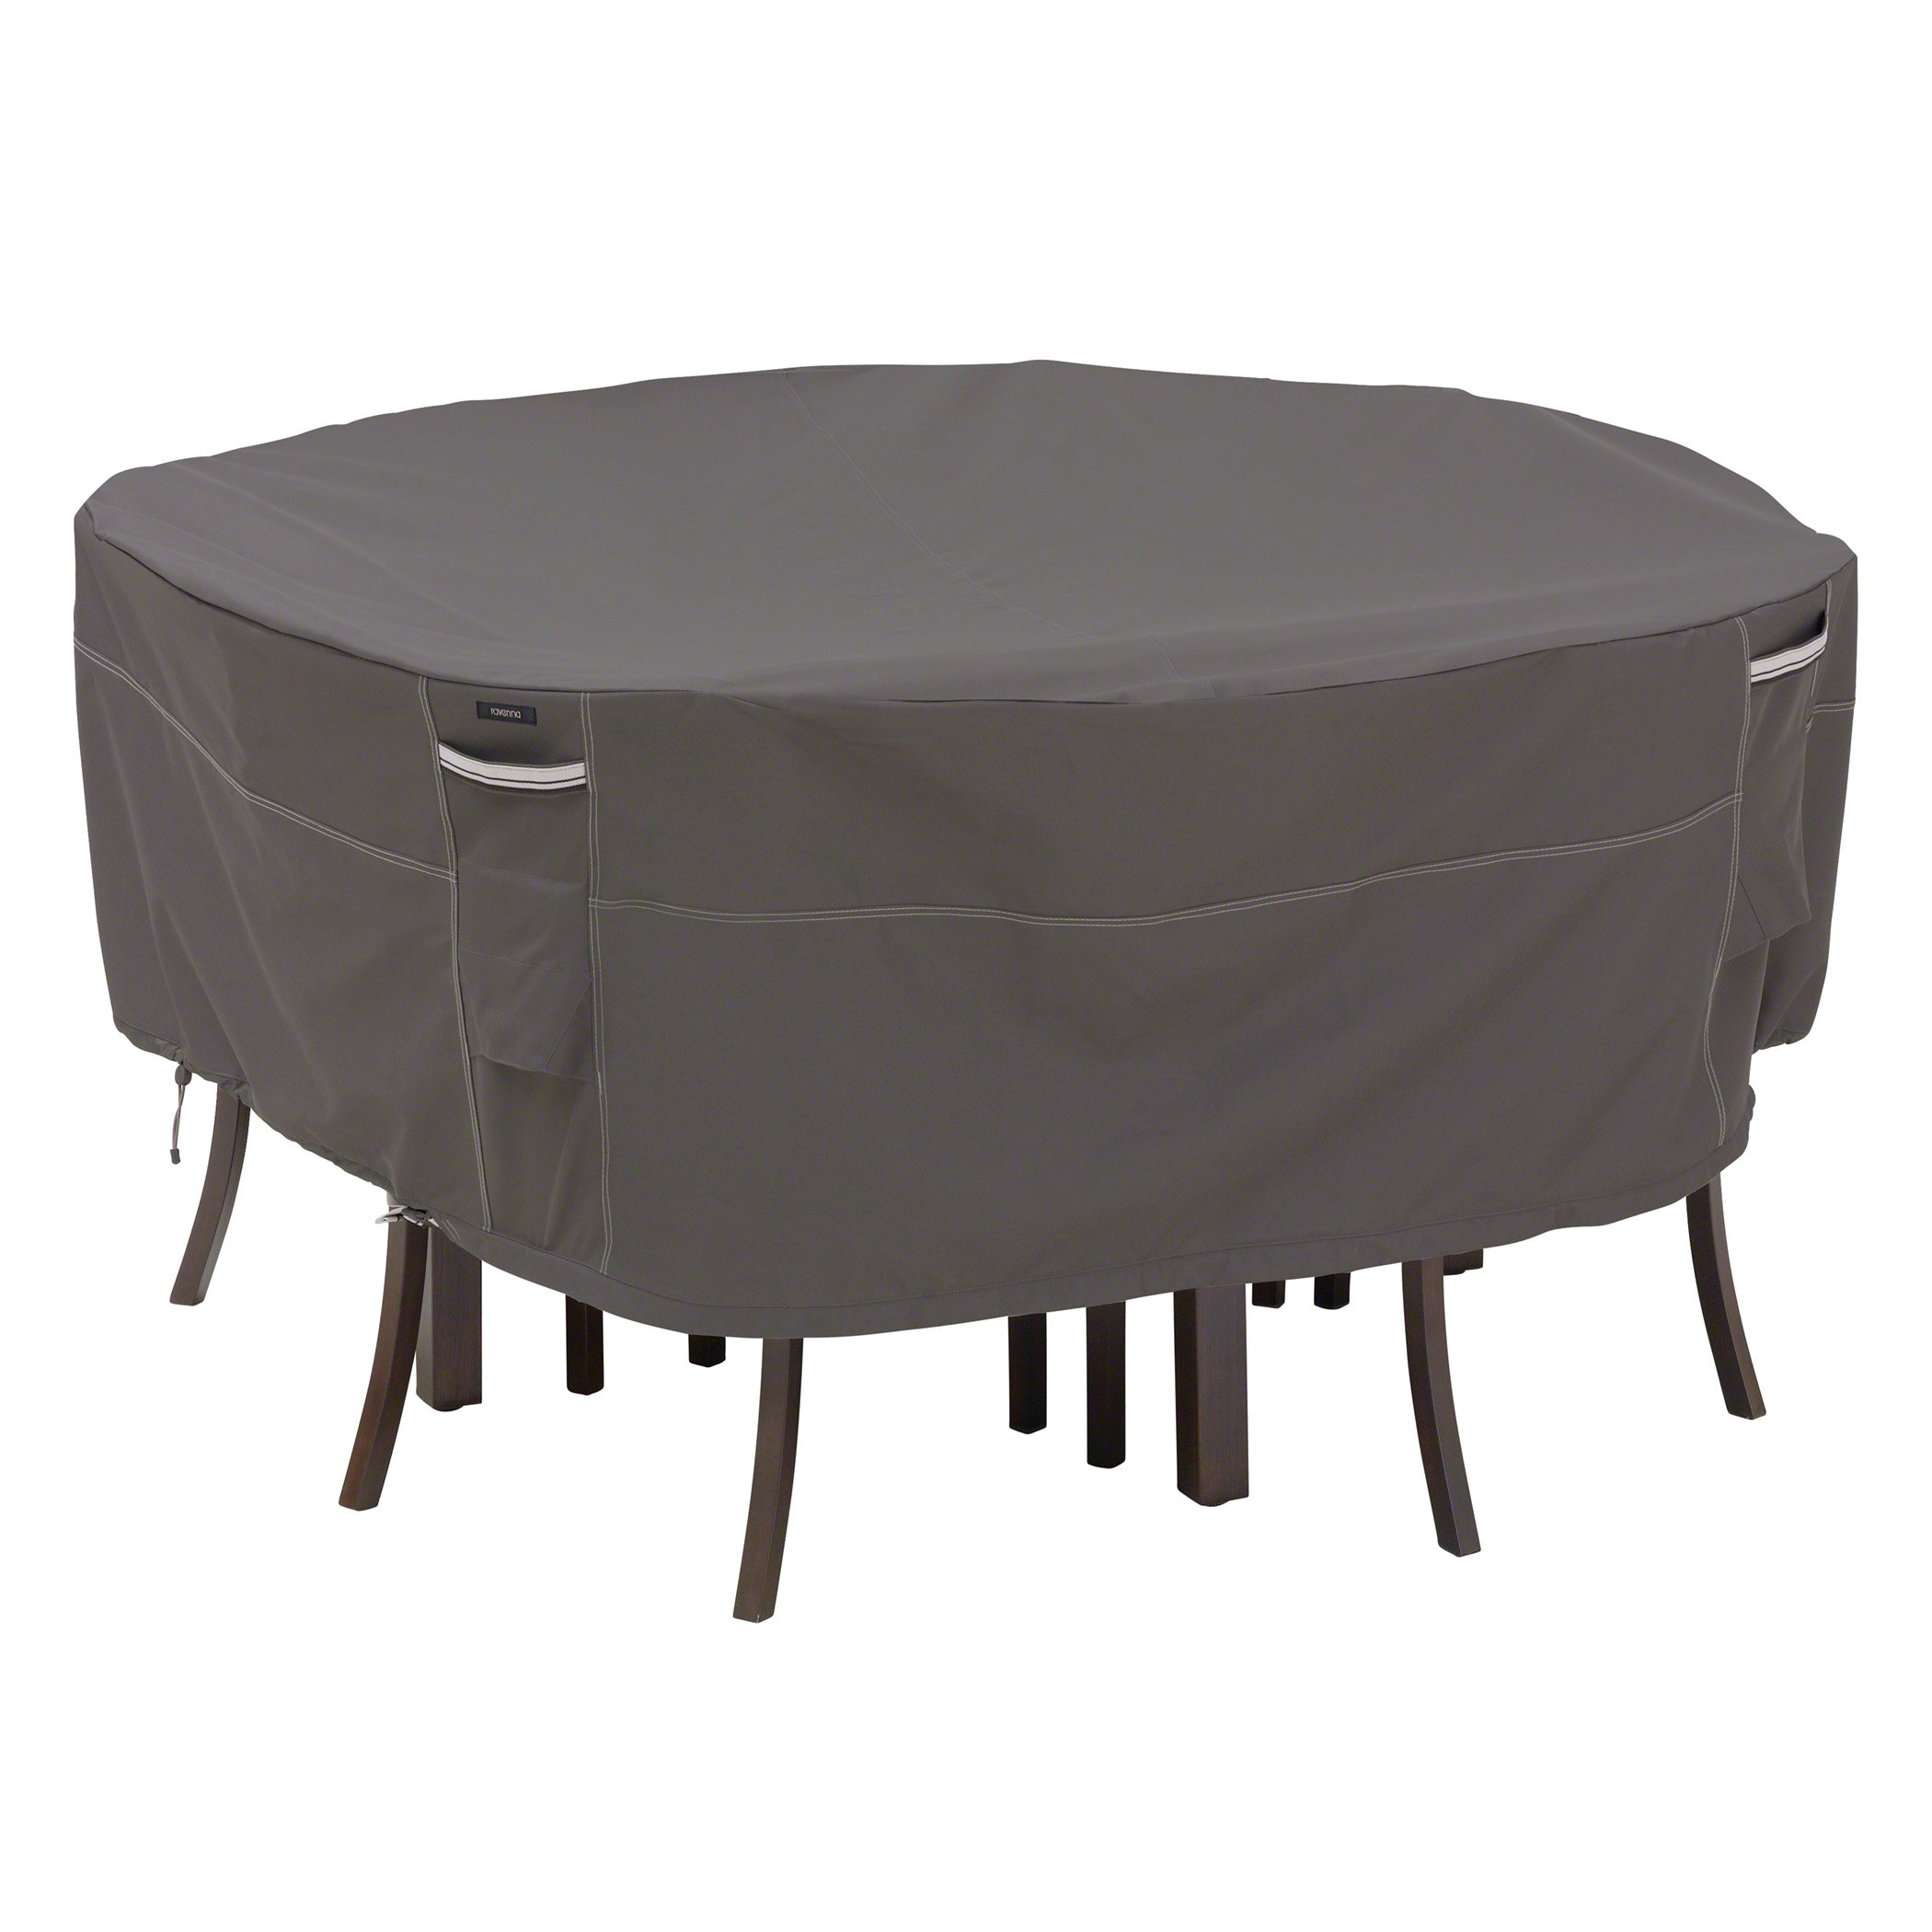 Classic Accessories 55-157-035101-00 Ravenna Round Patio Table & Chair Cover